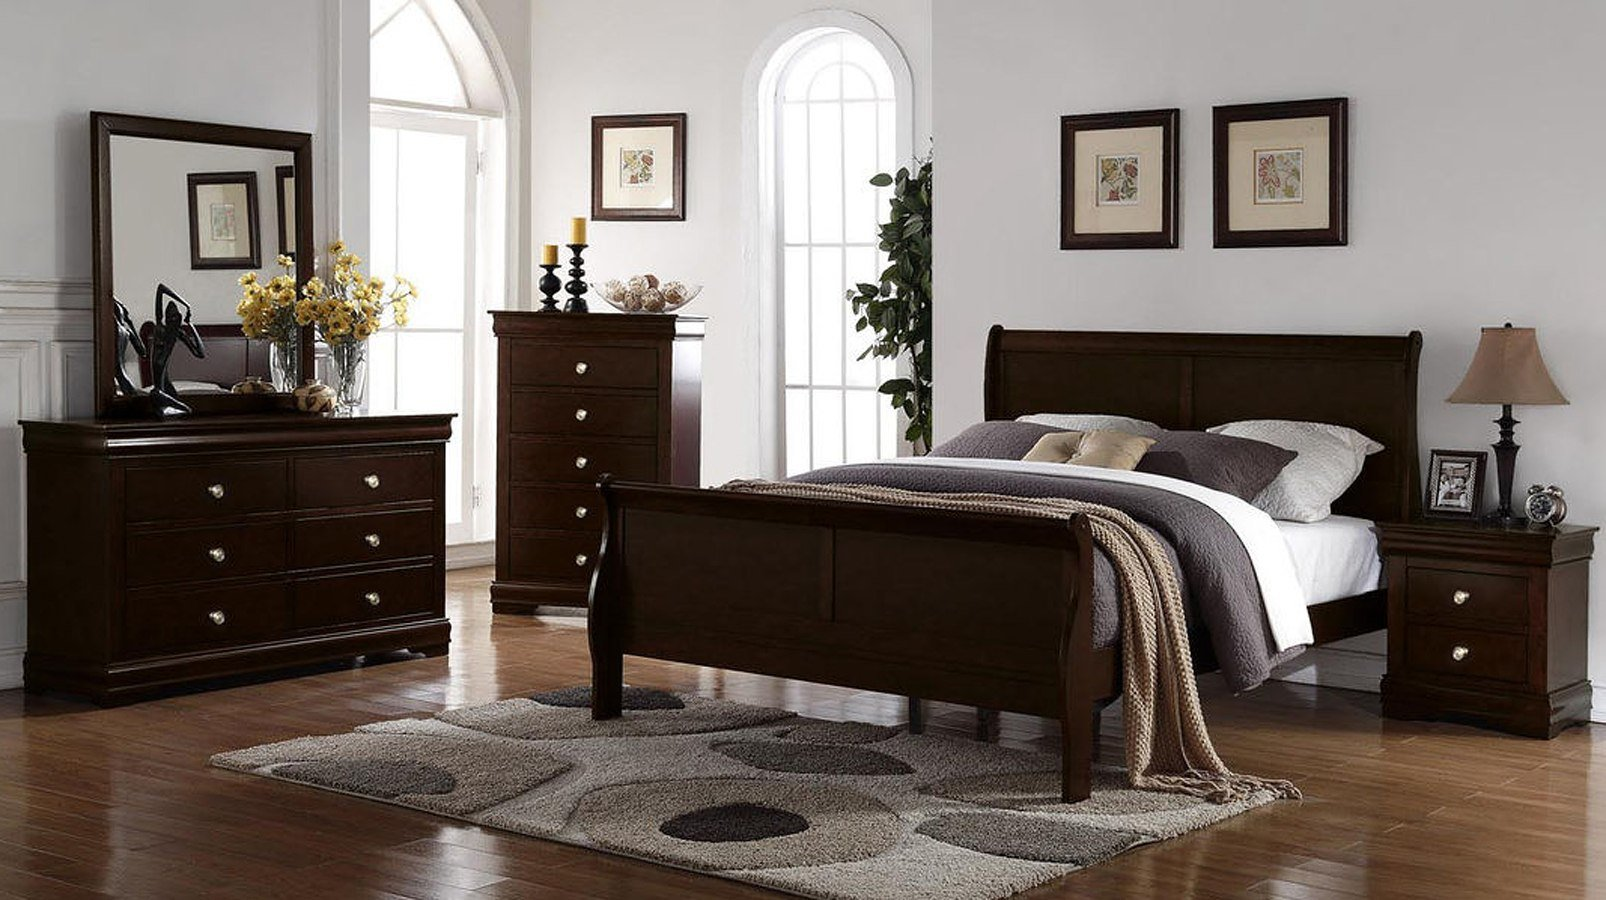 Best Orleans Sleigh Bedroom Set Merlot Steve Silver Furniture With Pictures